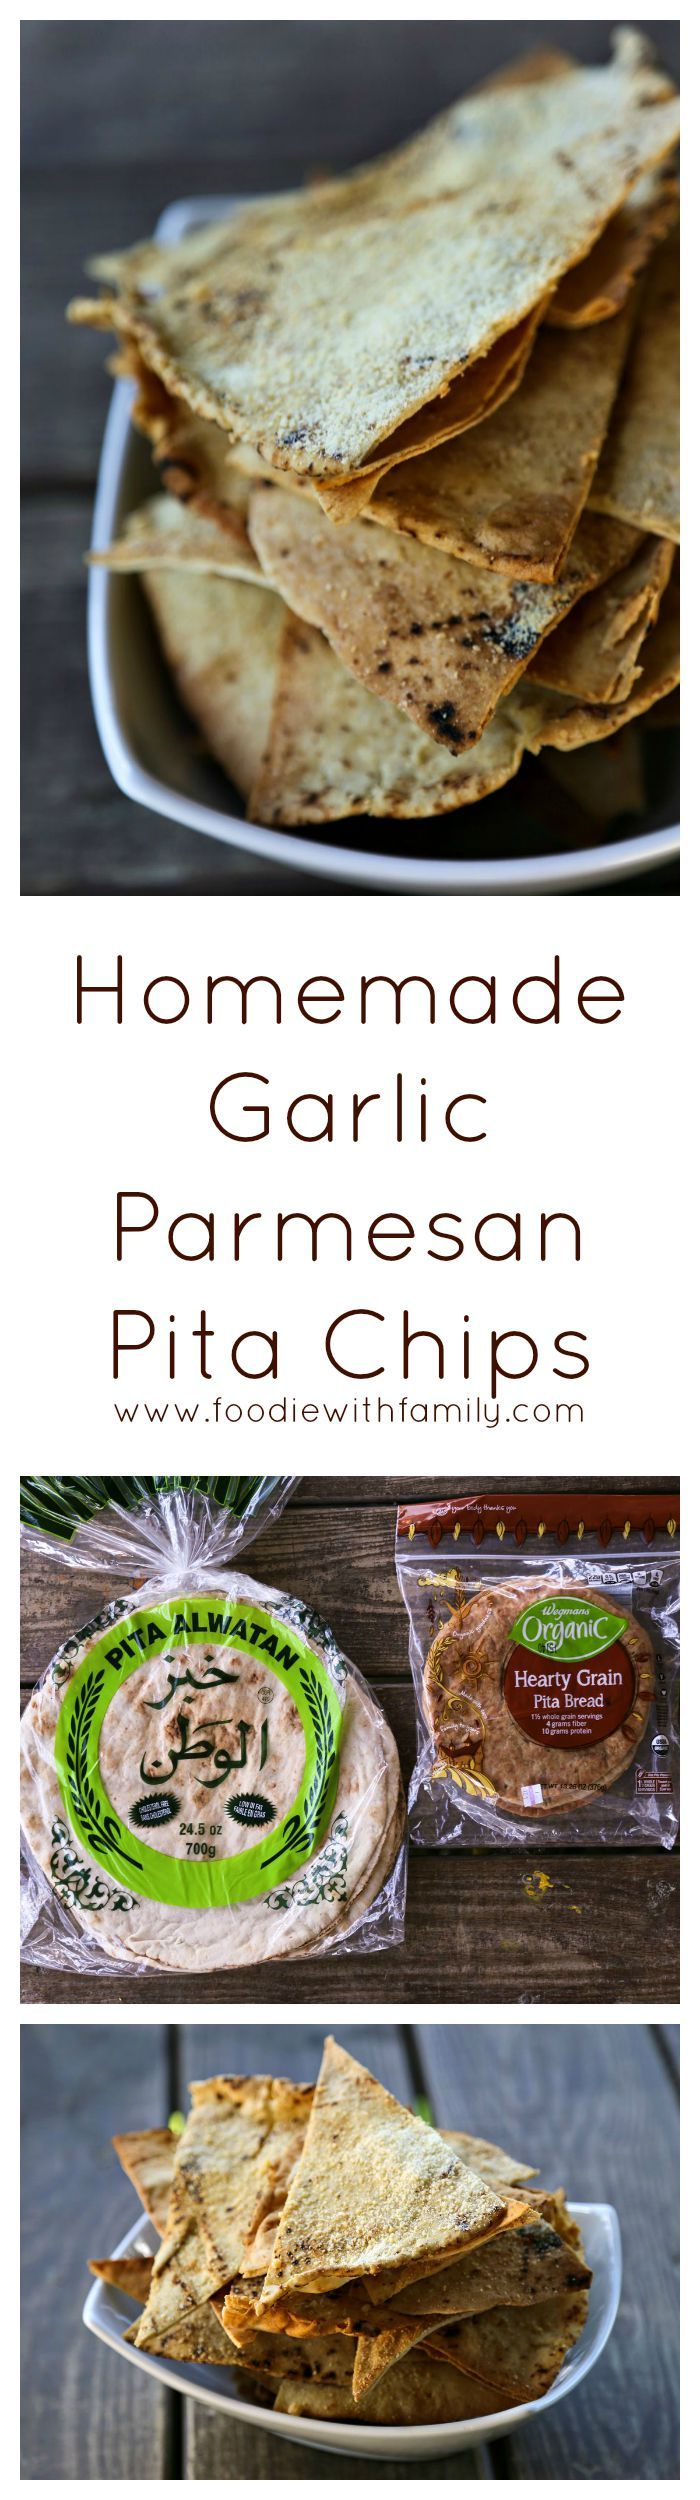 Homemade Garlic Paramesan Pita Chips from foodiewithfamily.com